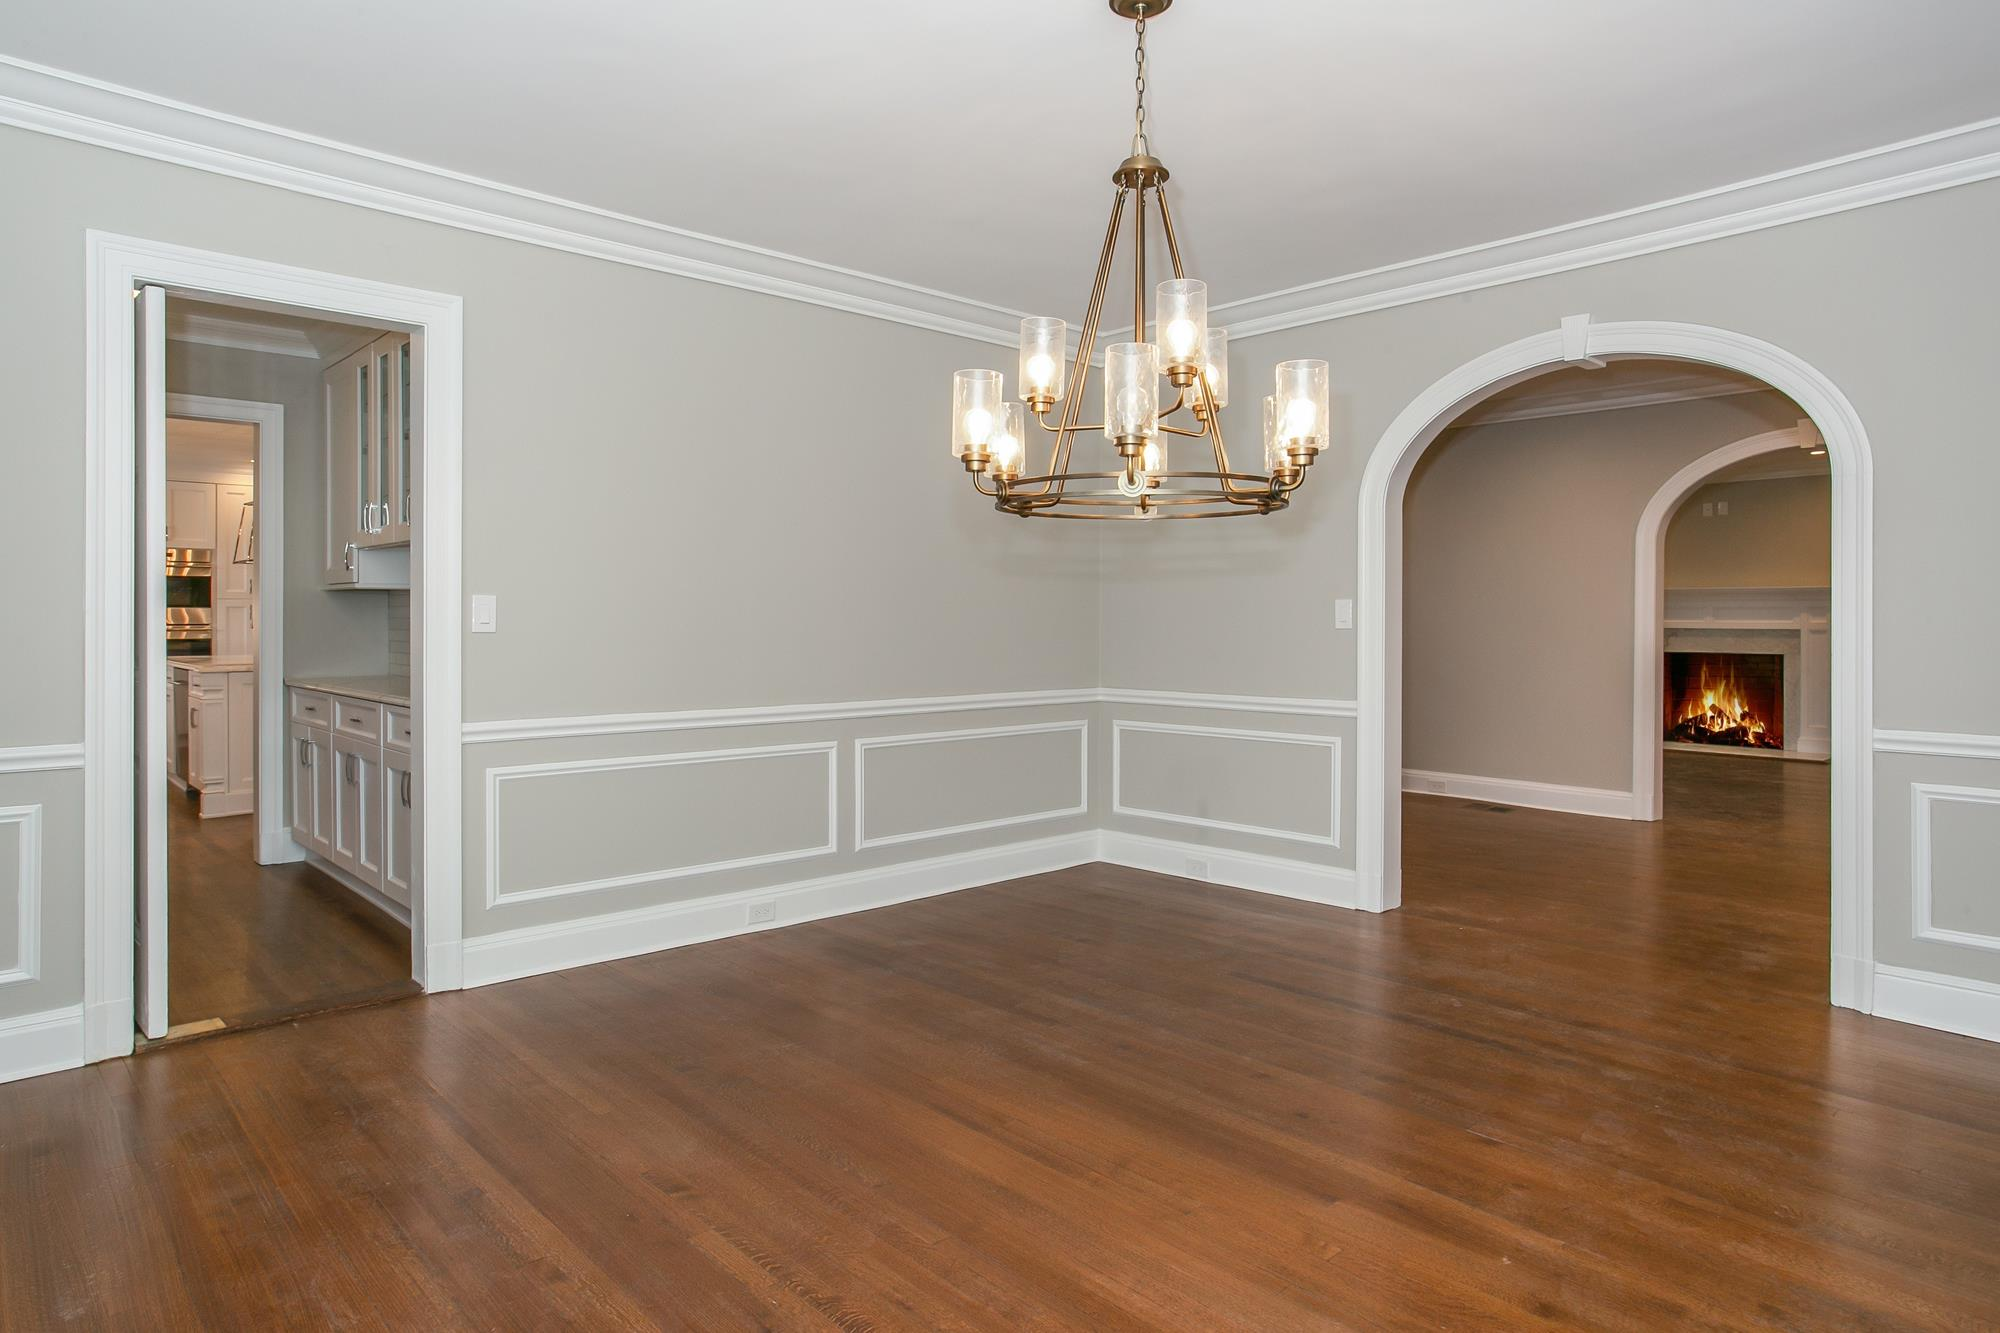 RENOVATION -- : Classic 4-Bd. Brick Center-Hall Colonial on Grosvenor Avenue